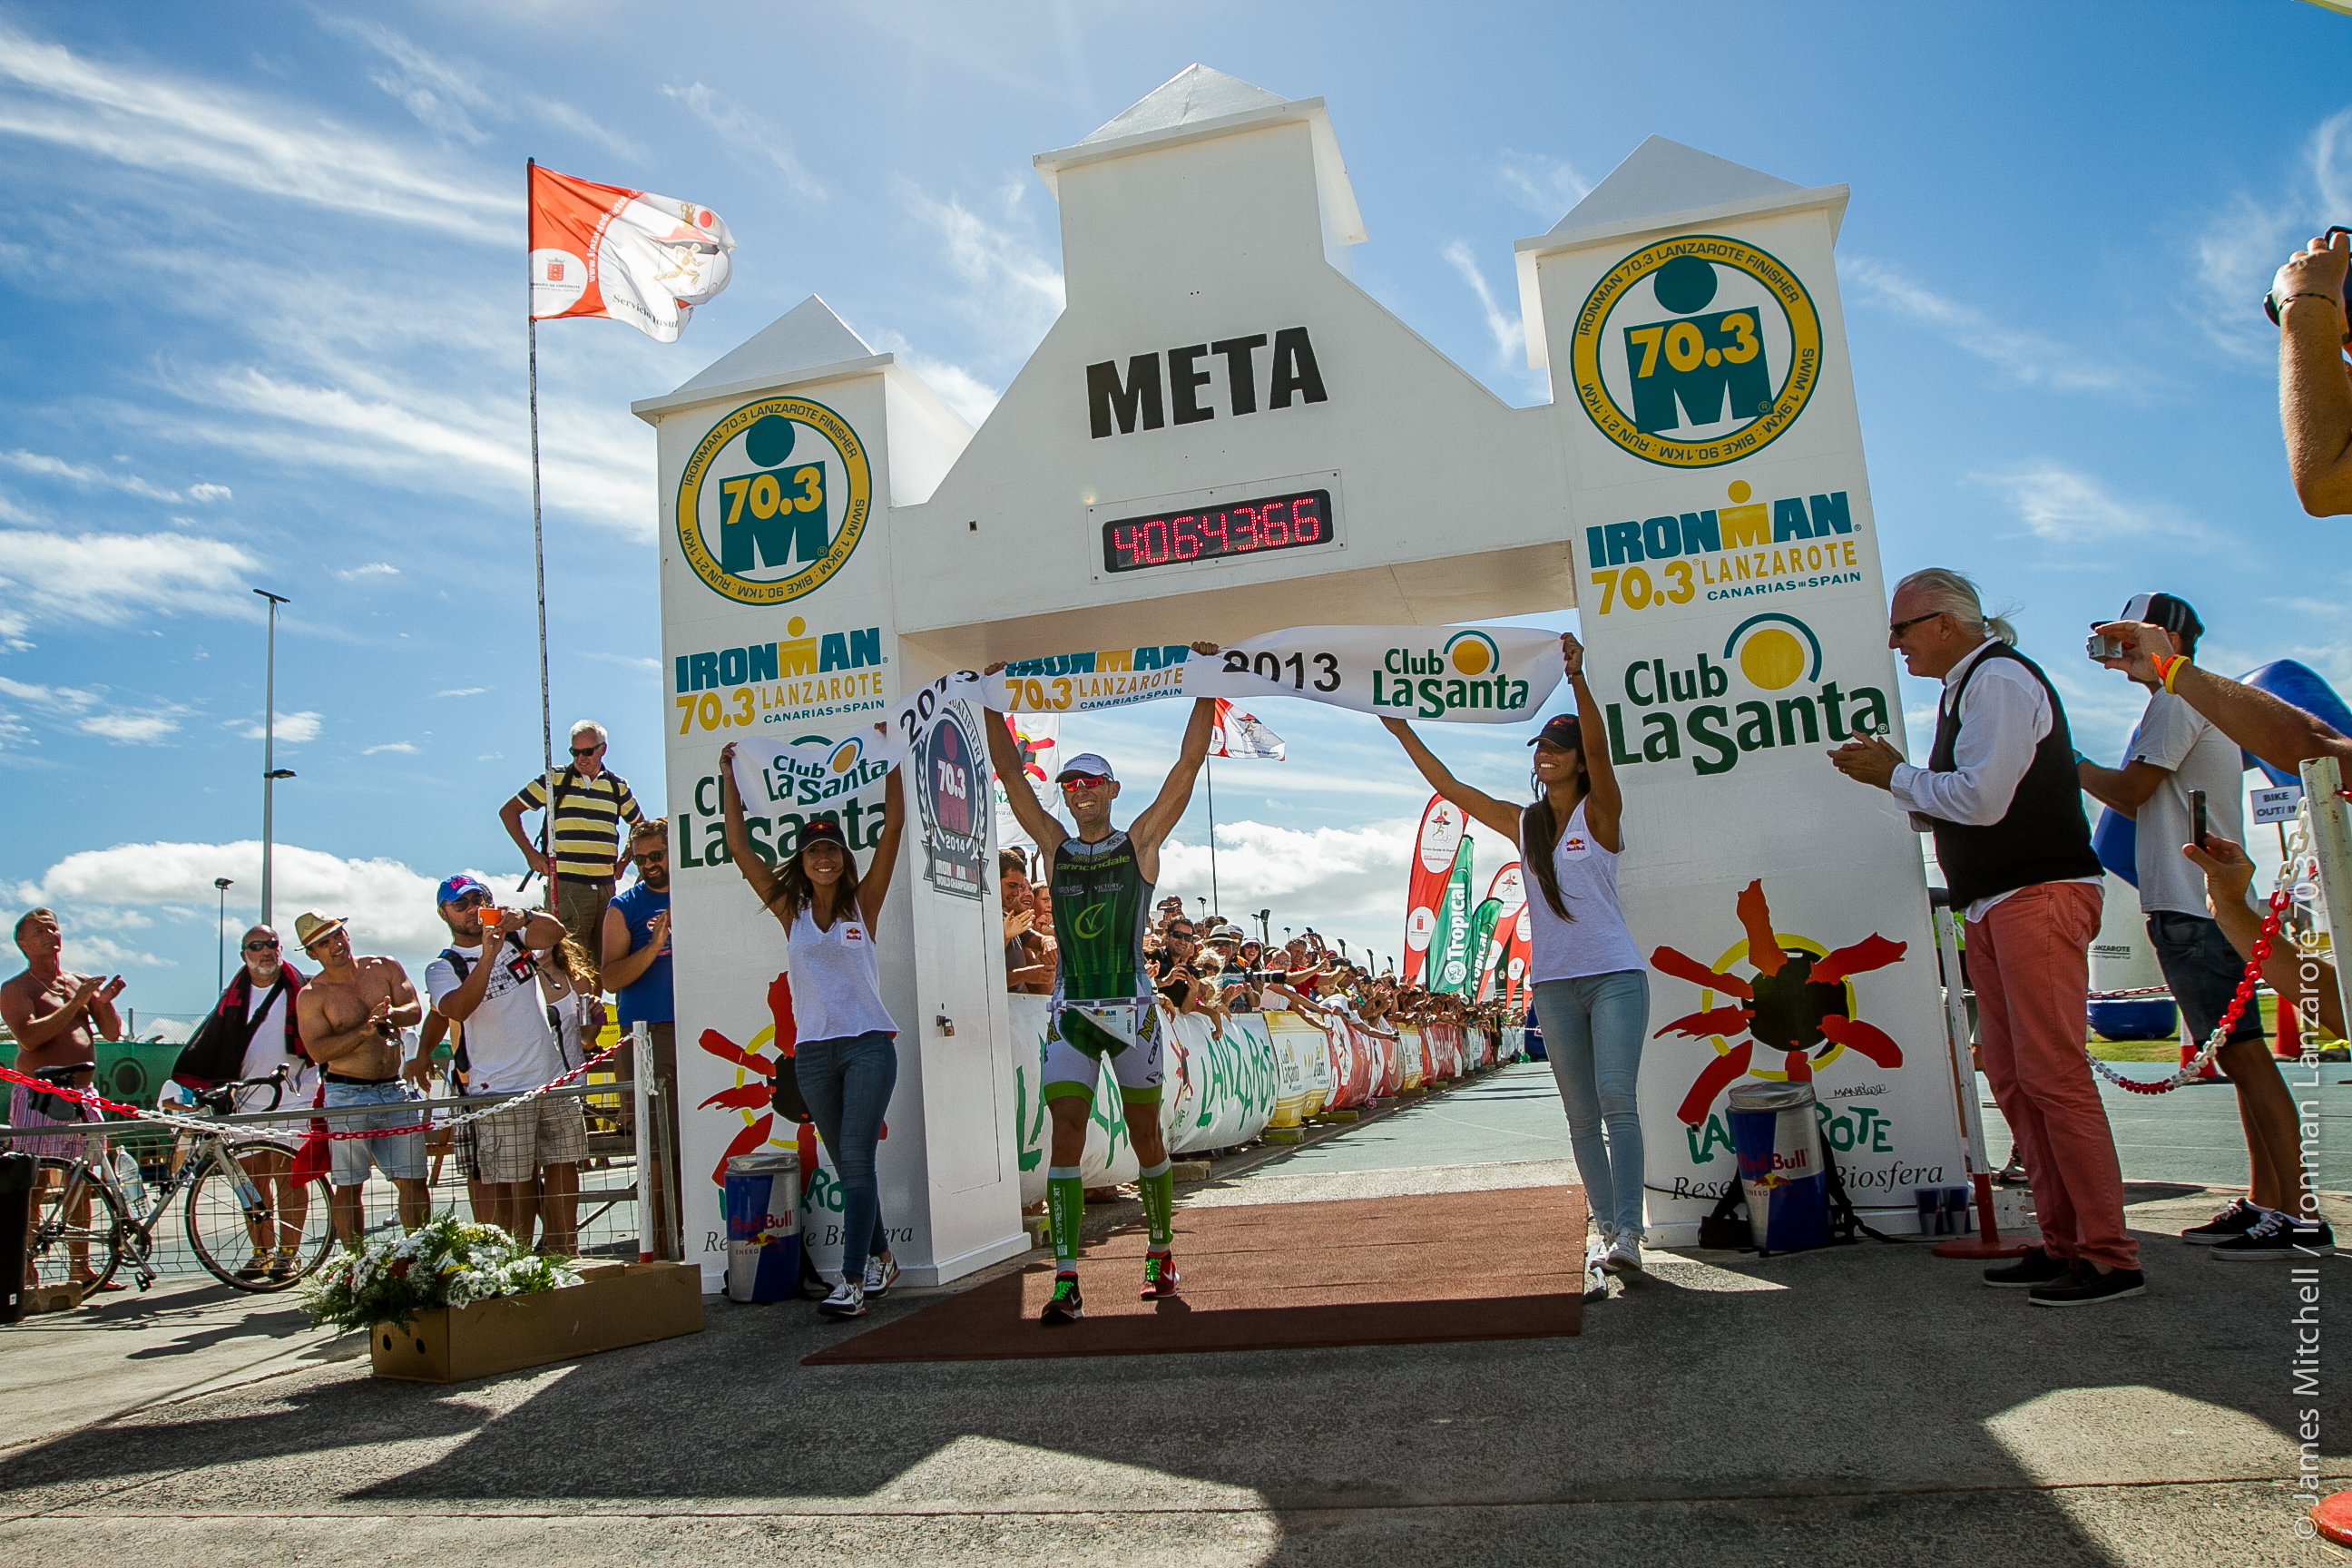 IRONMAN Lanzarote 2014 champions return in search of double island victory as Victor Del Corral seeks to defend his title.